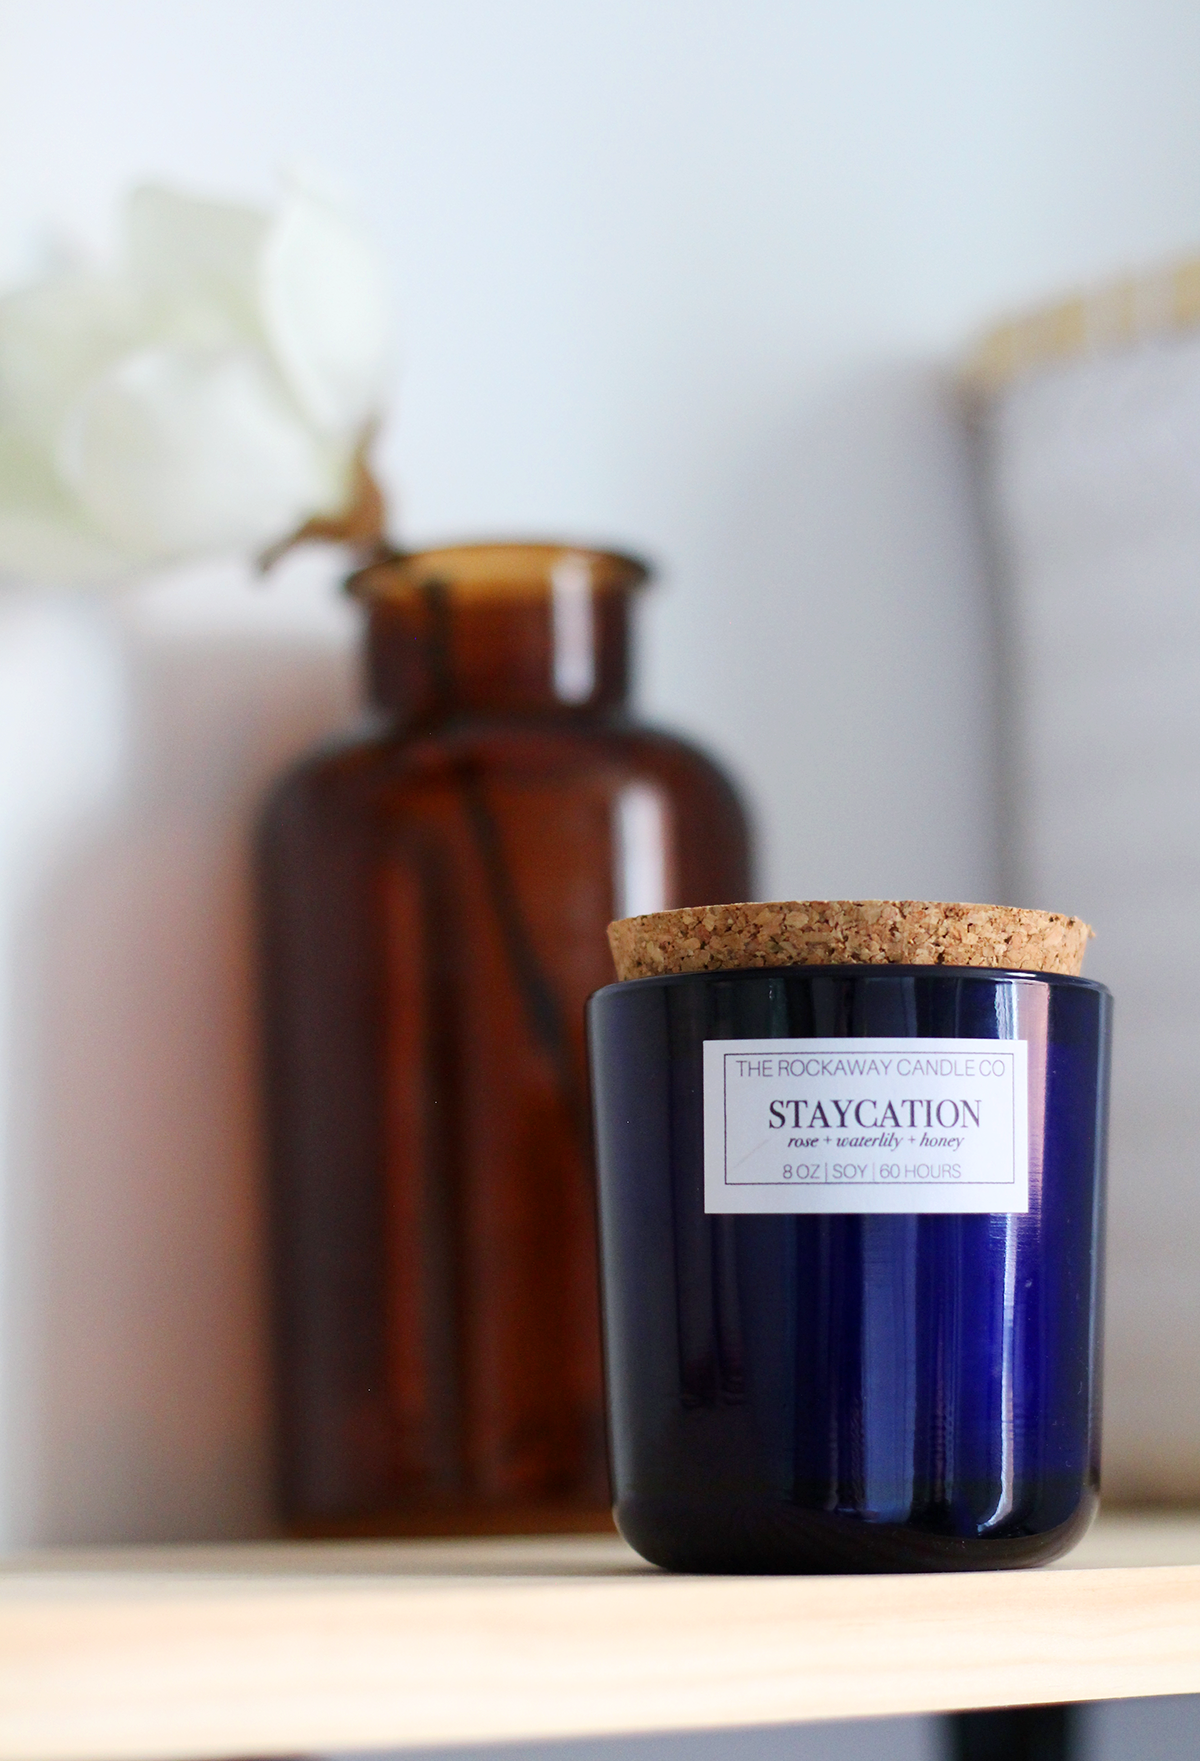 Exclusive Rockaway Candle as part of Lily & Val Staycation Surprise Box Launching on Thursday, July 26th